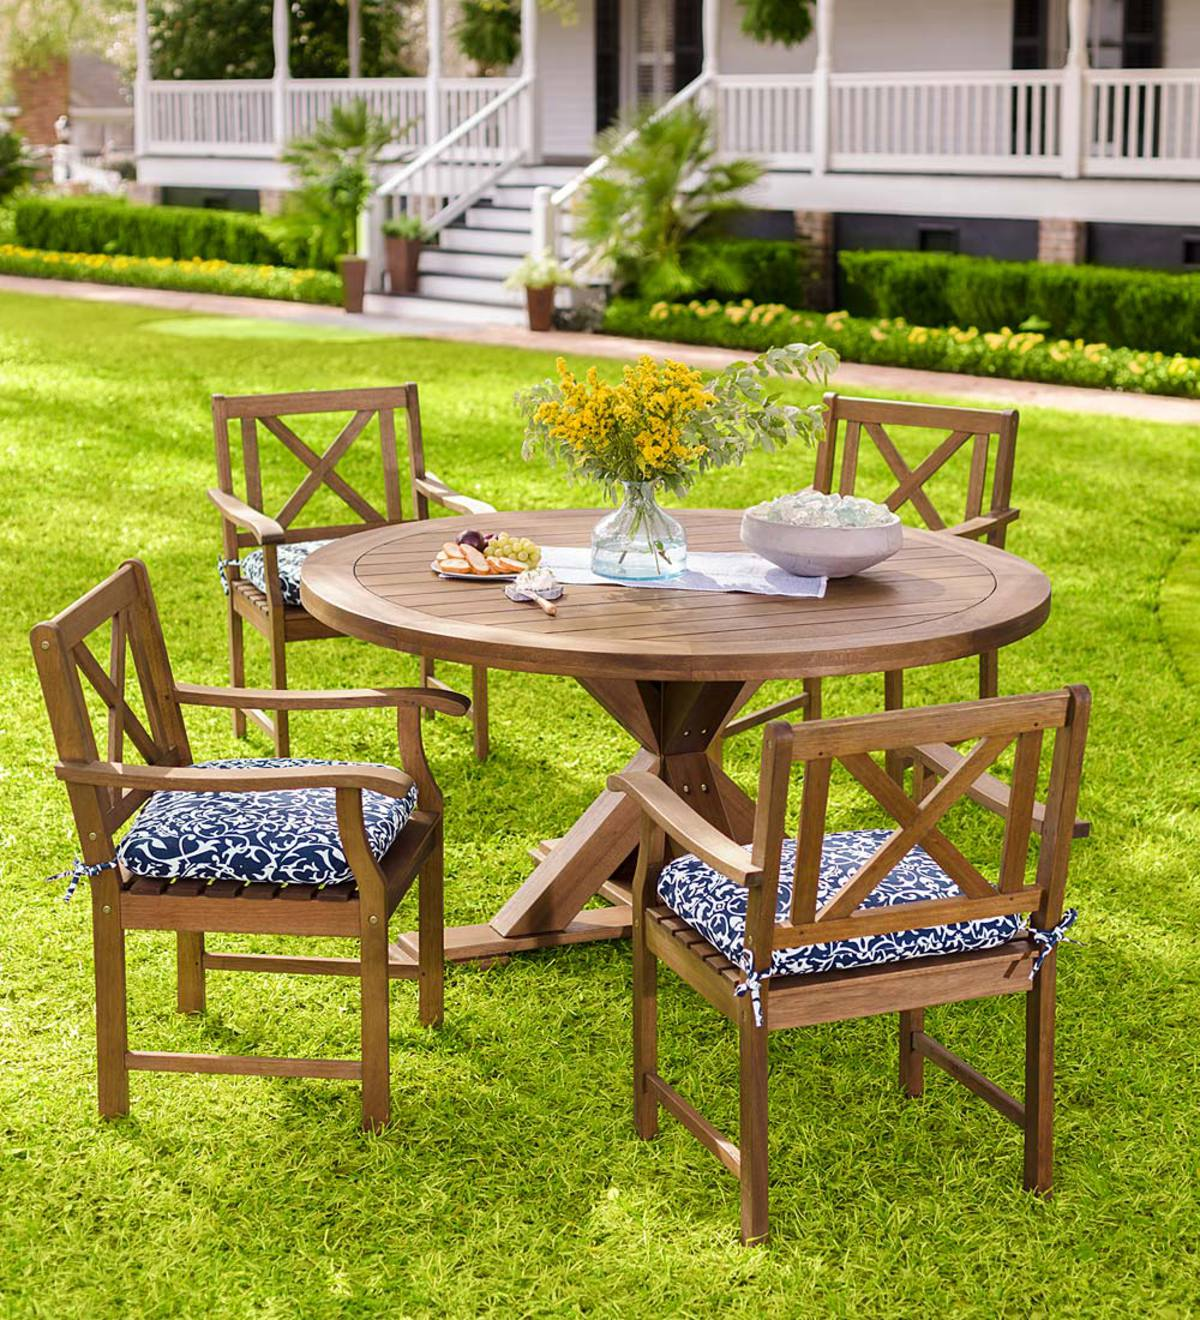 Claremont Eucalyptus Round Dining Table and Chairs ...